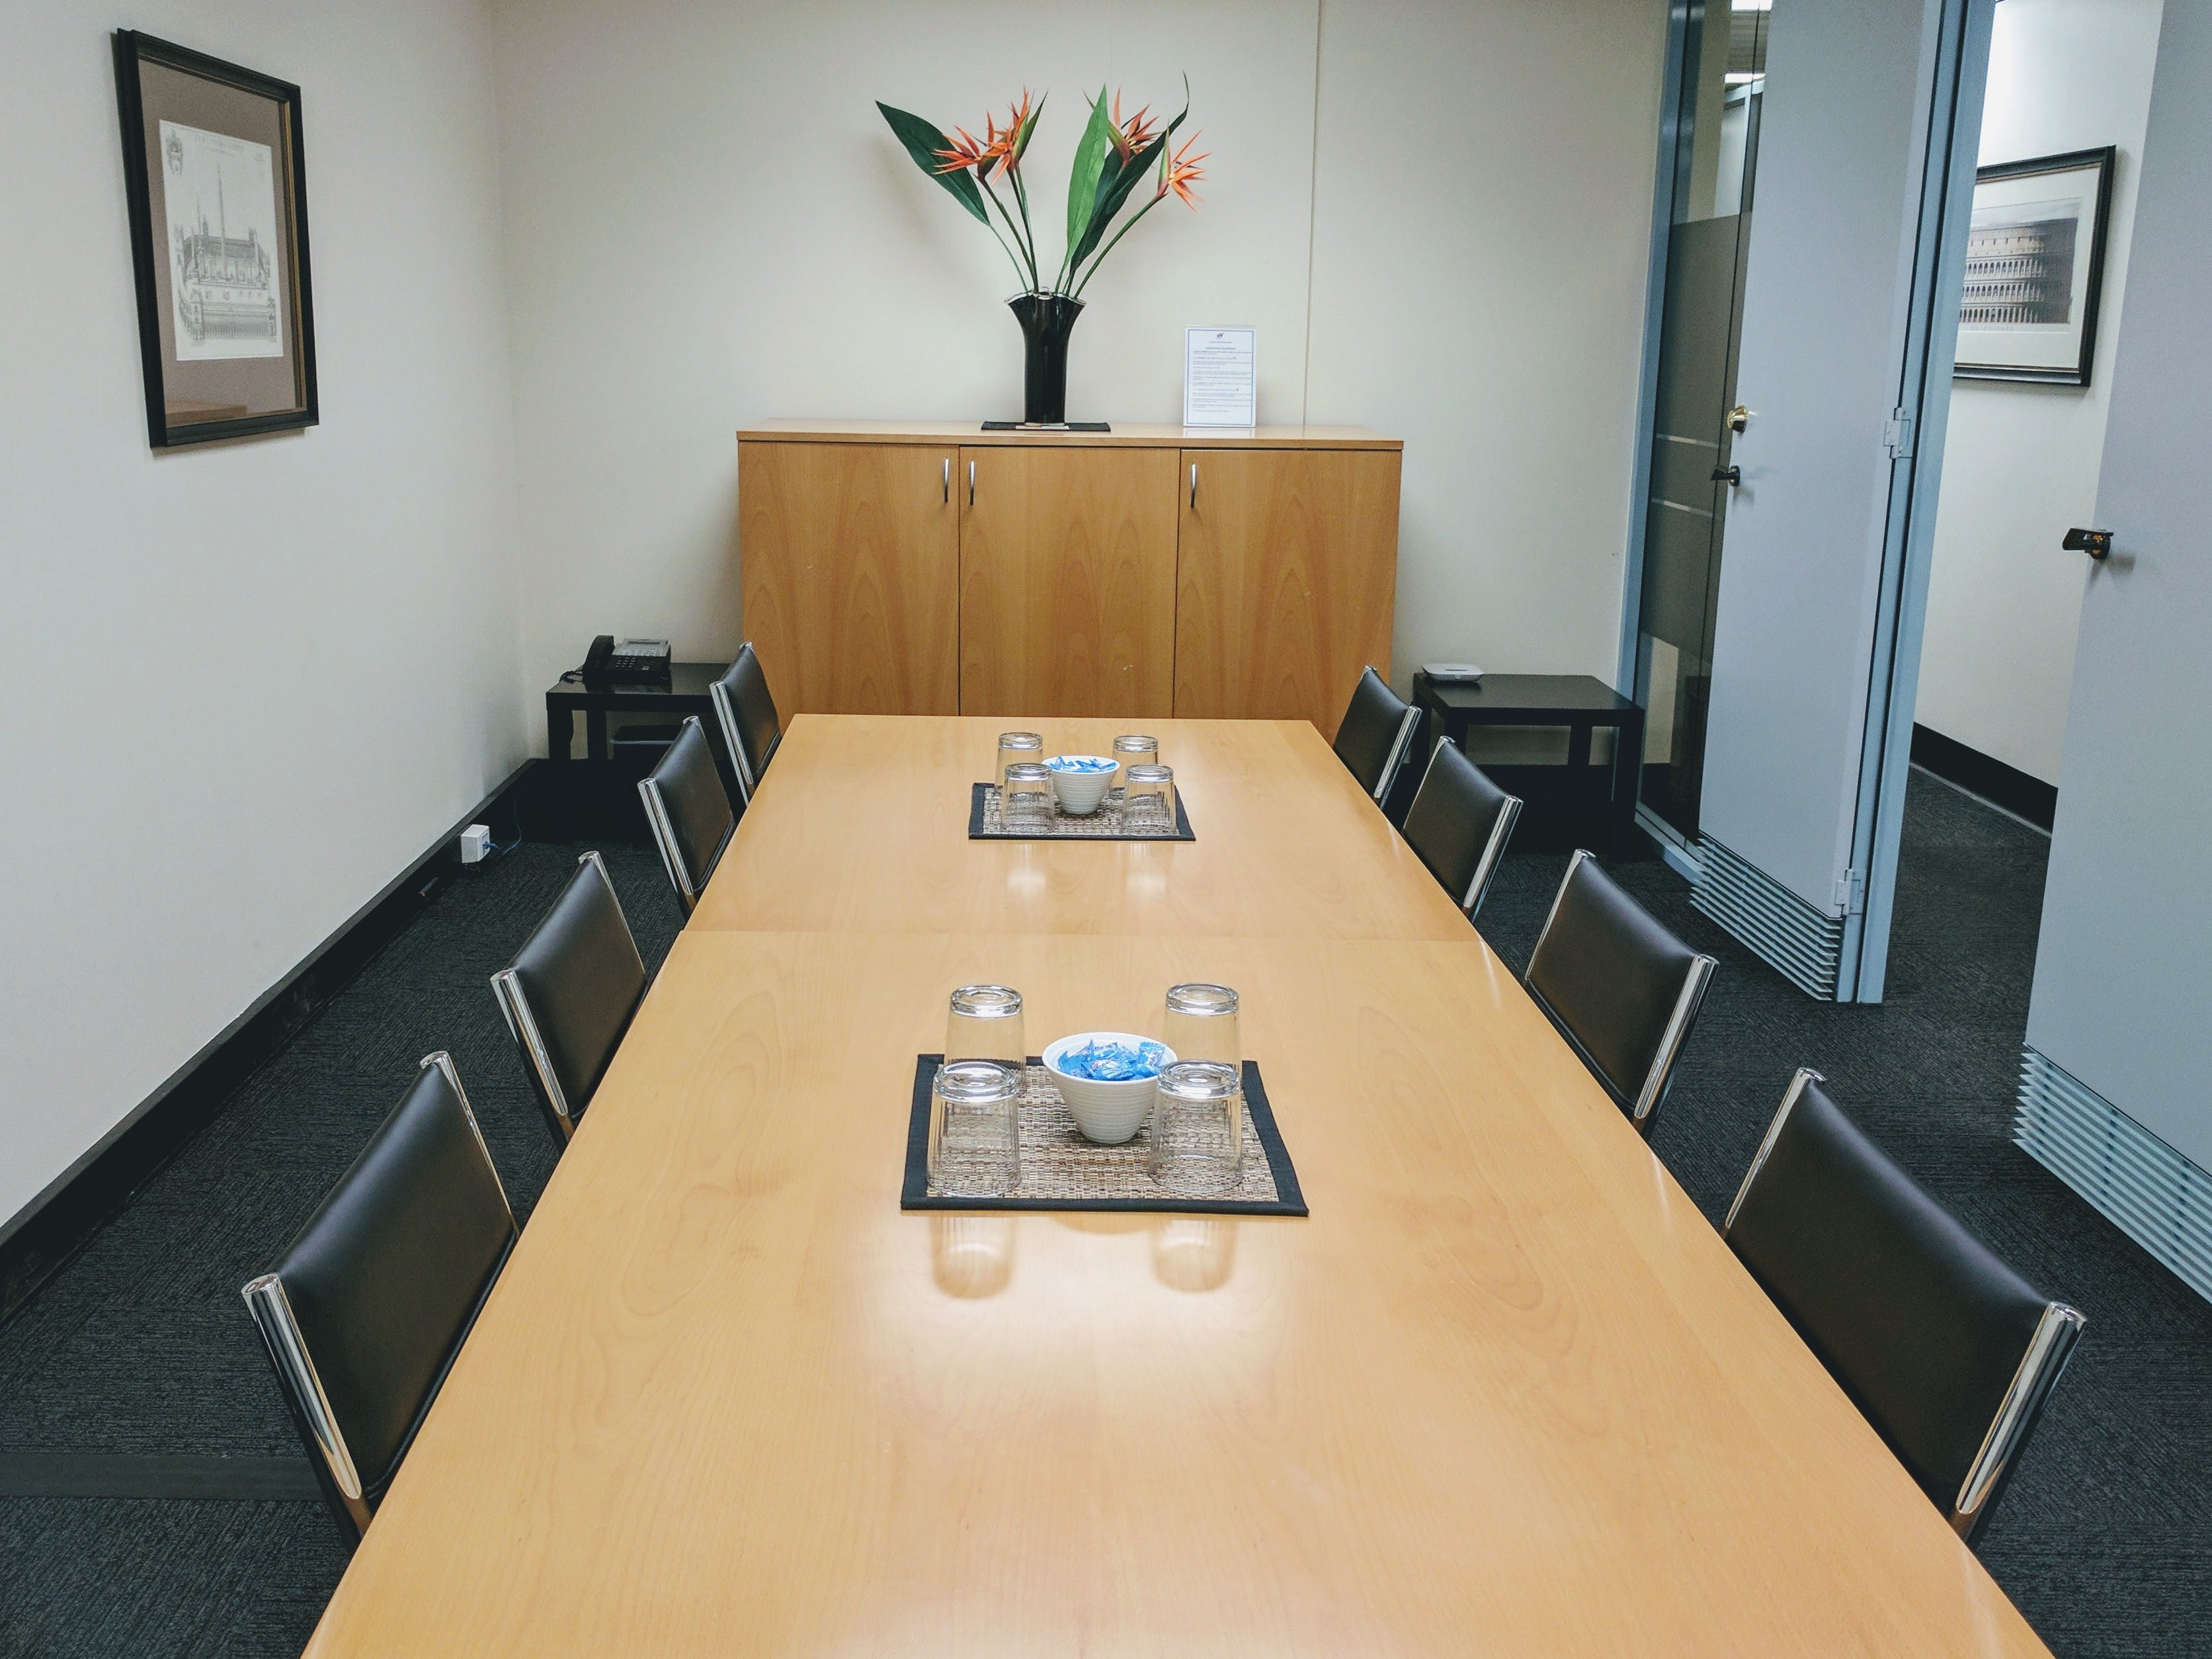 Wilkin Room, meeting room at Wilkin Group, image 1